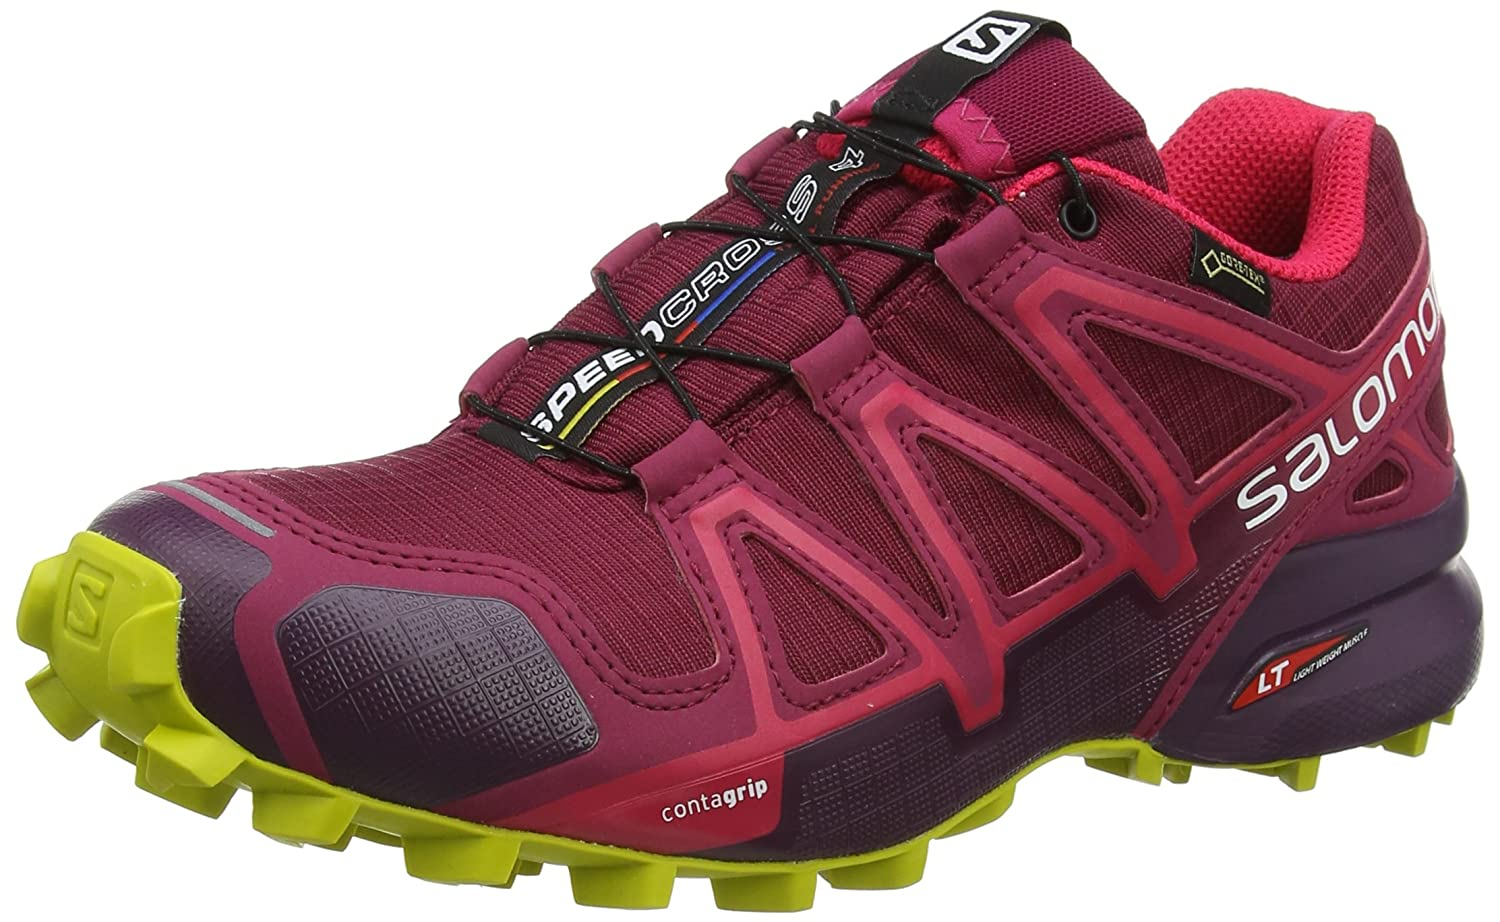 Salomon Women's Speedcross 4 GTX B078SYD5G6 W Trail Running Shoe B078SYD5G6 GTX 9.5 B(M) US|Beet Red/Potent Purple/Citronelle 45e917